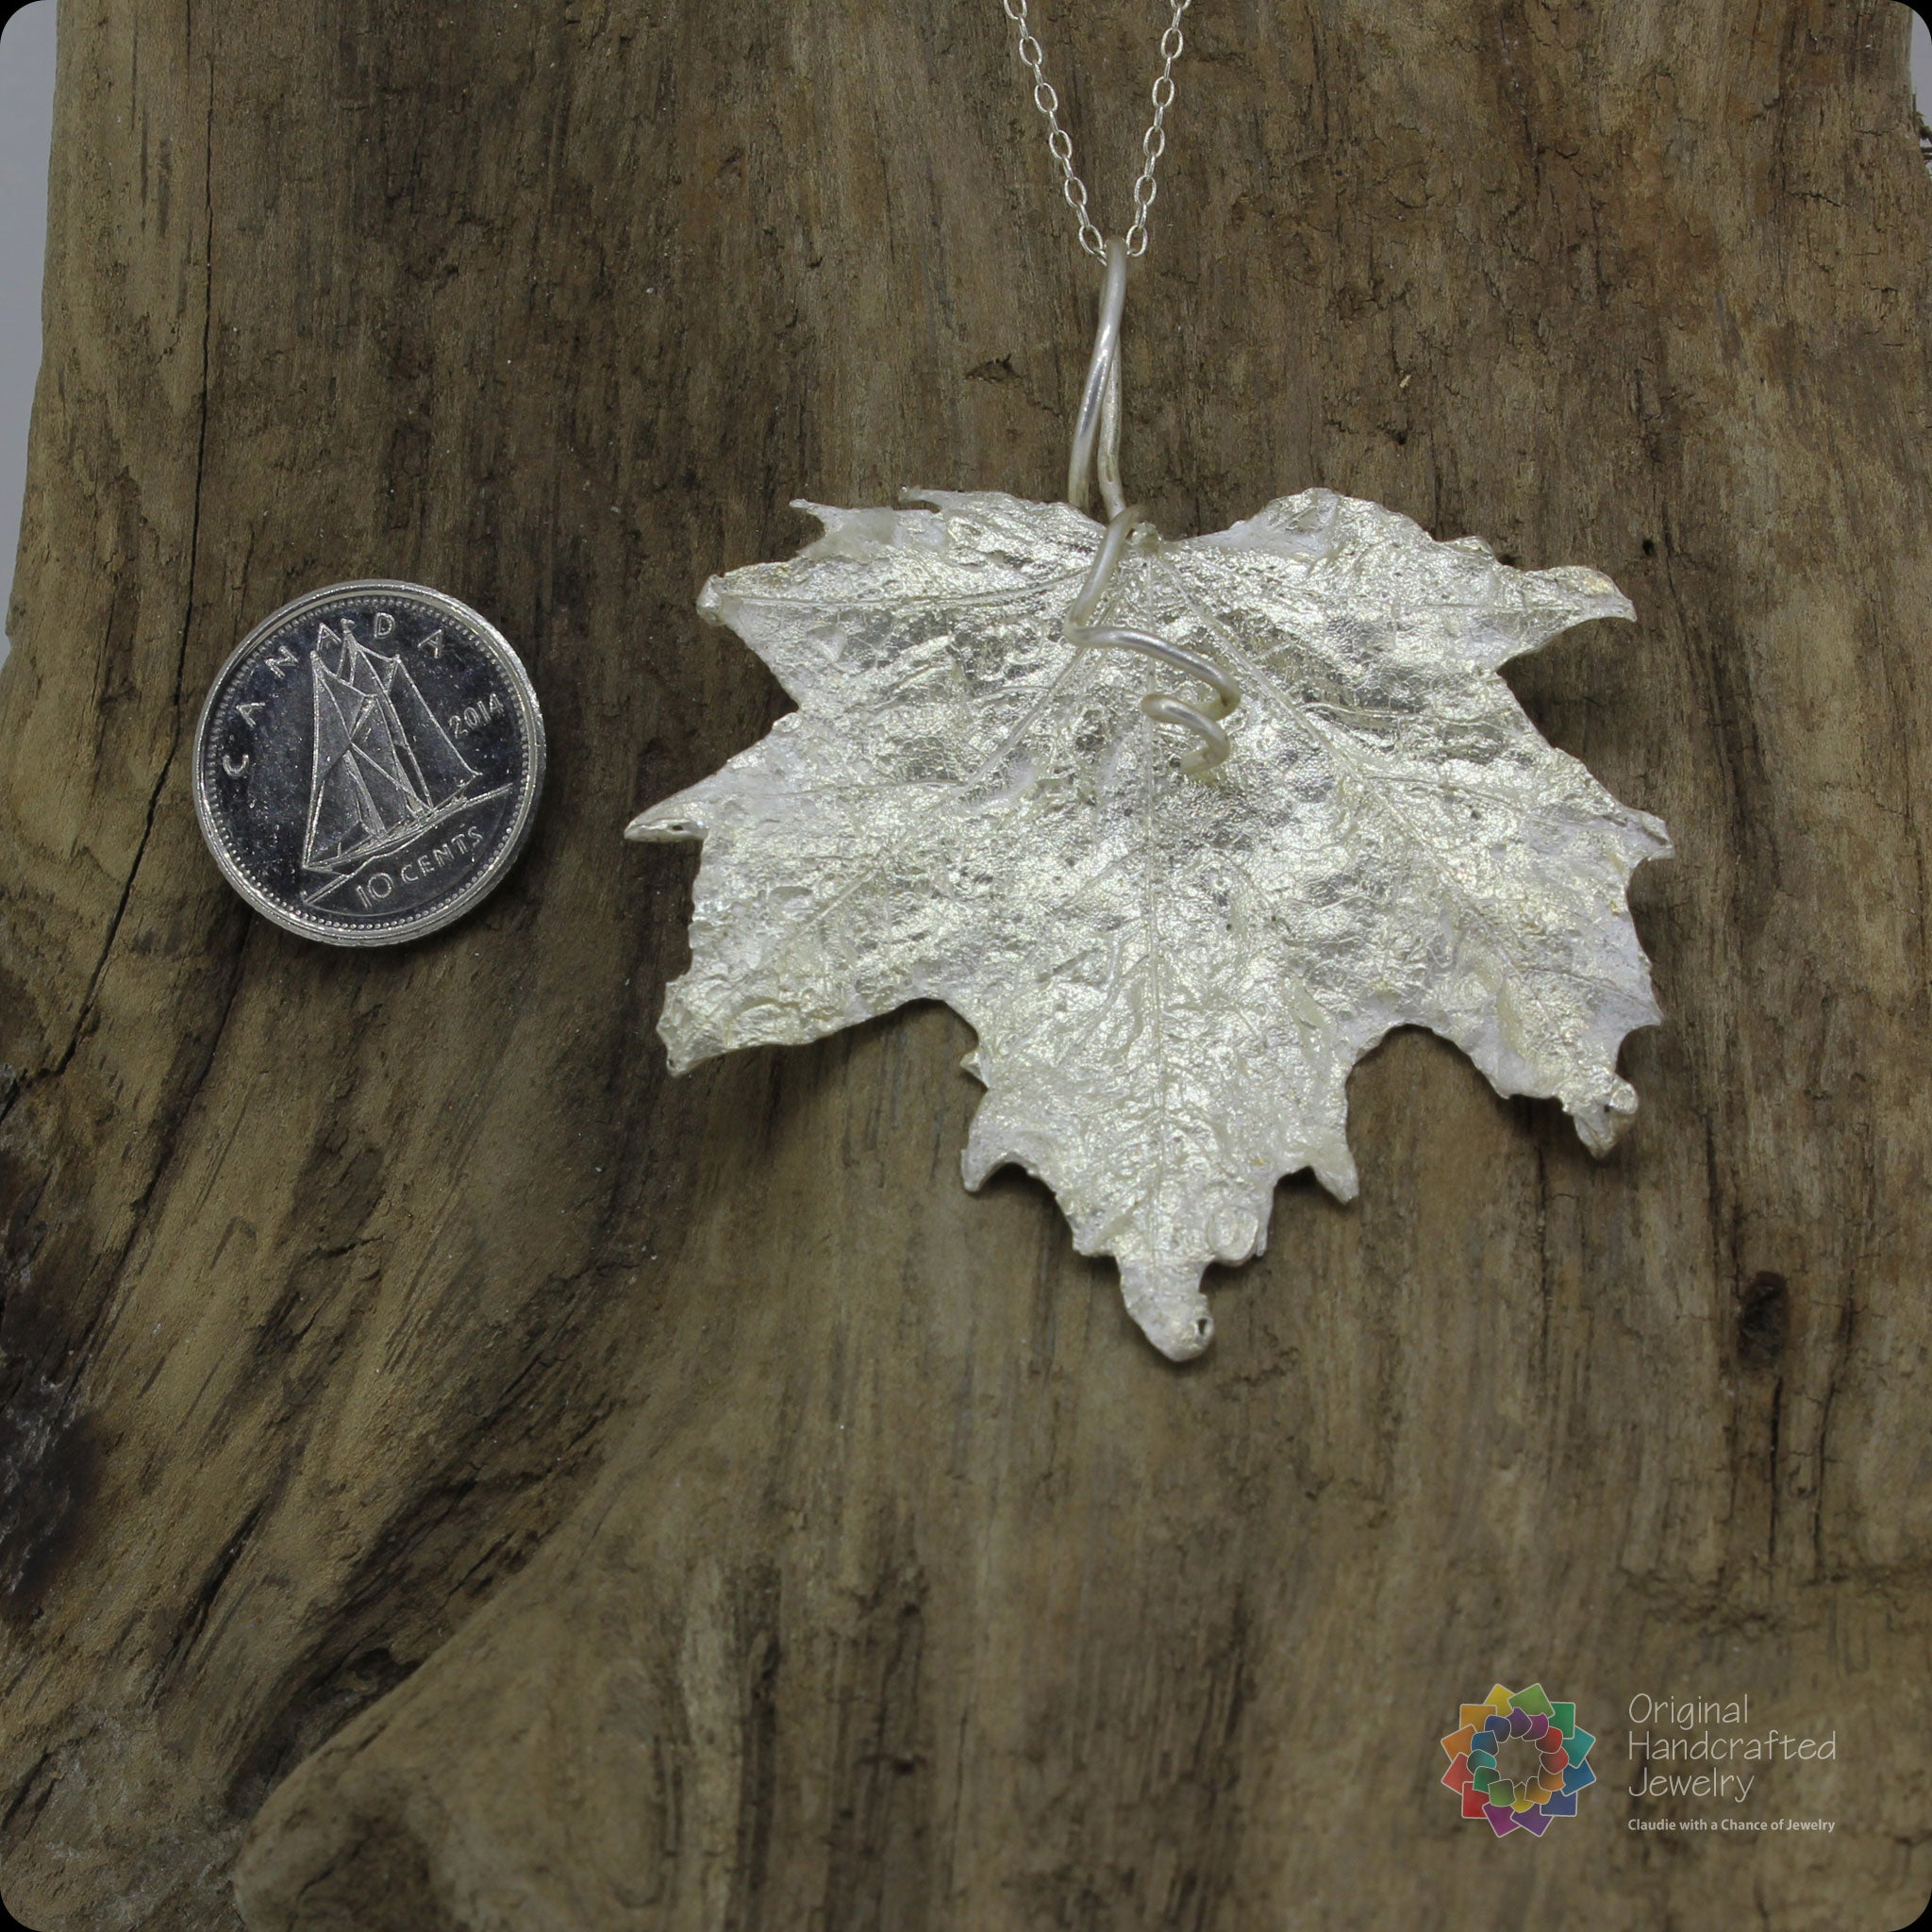 maple htm pendant and chain designed sterling silver bezels bezel p leaf